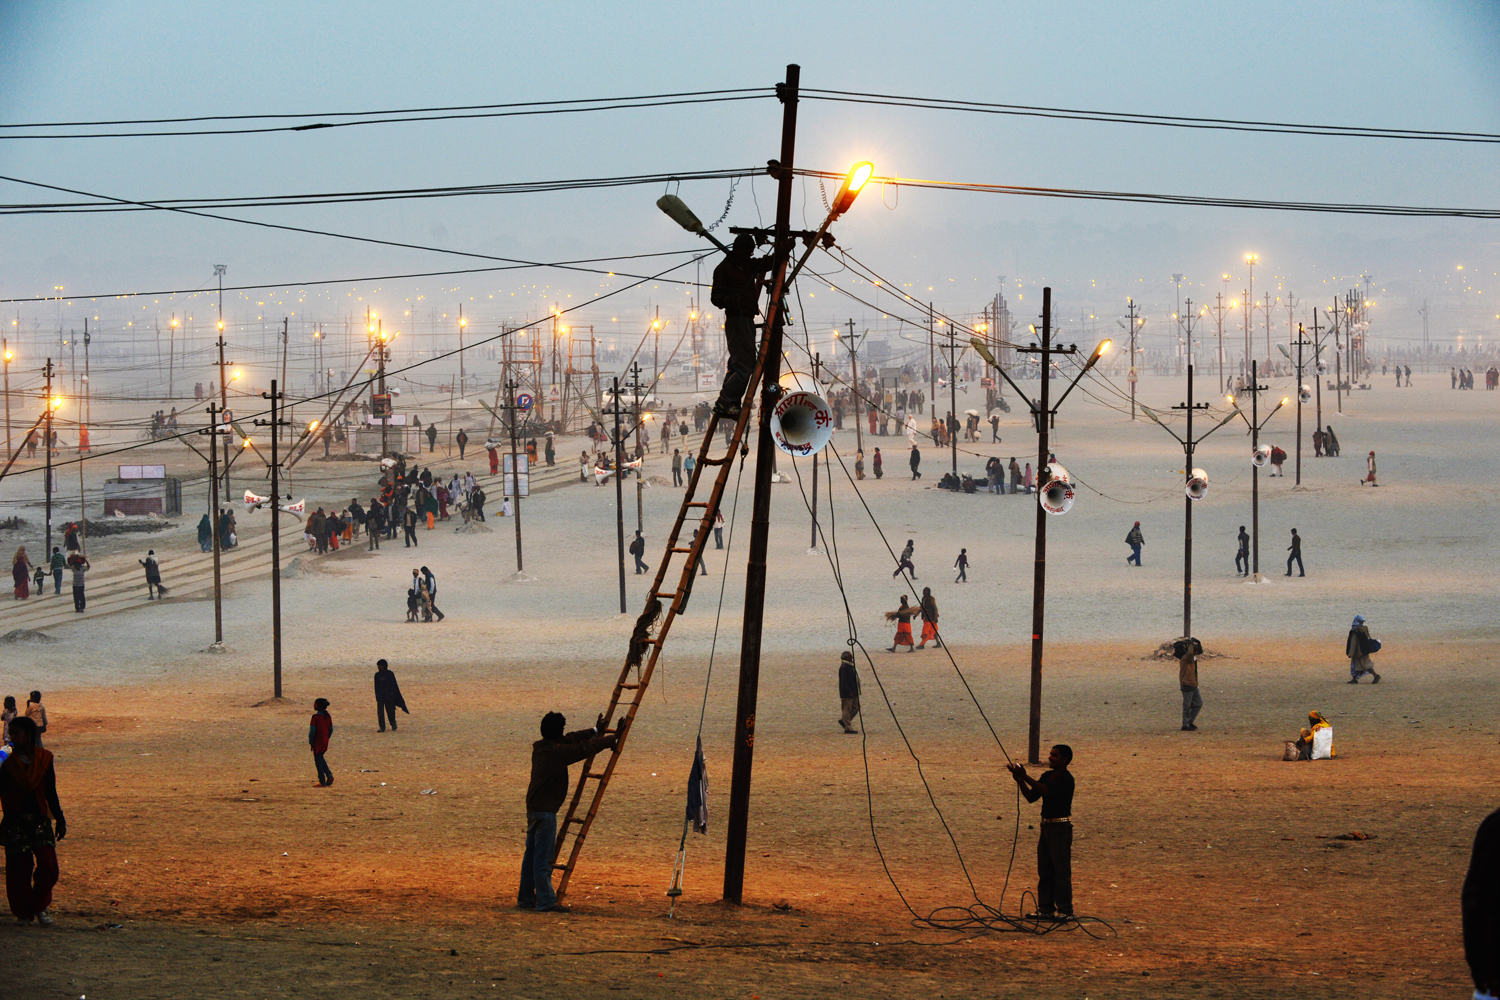 Jan. 13, 2013. Workers fix a lightpost, one of many that will illuminate the vast grounds receiving the millions of Hindu devotees that will congregate here for the next couple of months to celebrate the Kumbh Mela, in Allahabad, India.